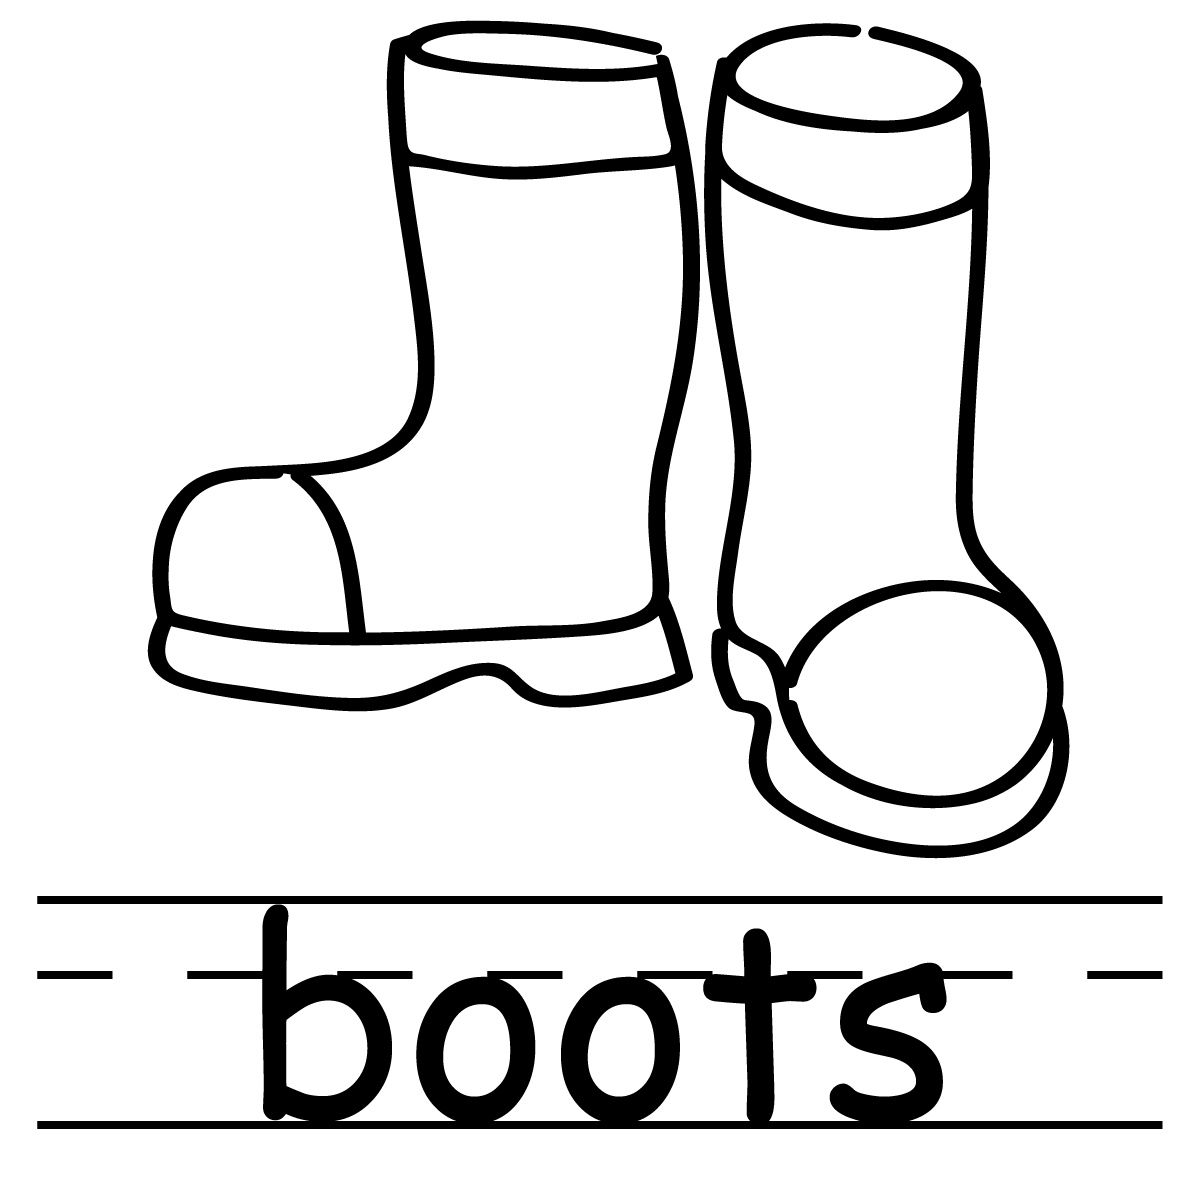 For rain boots seasons. Boot clipart black and white